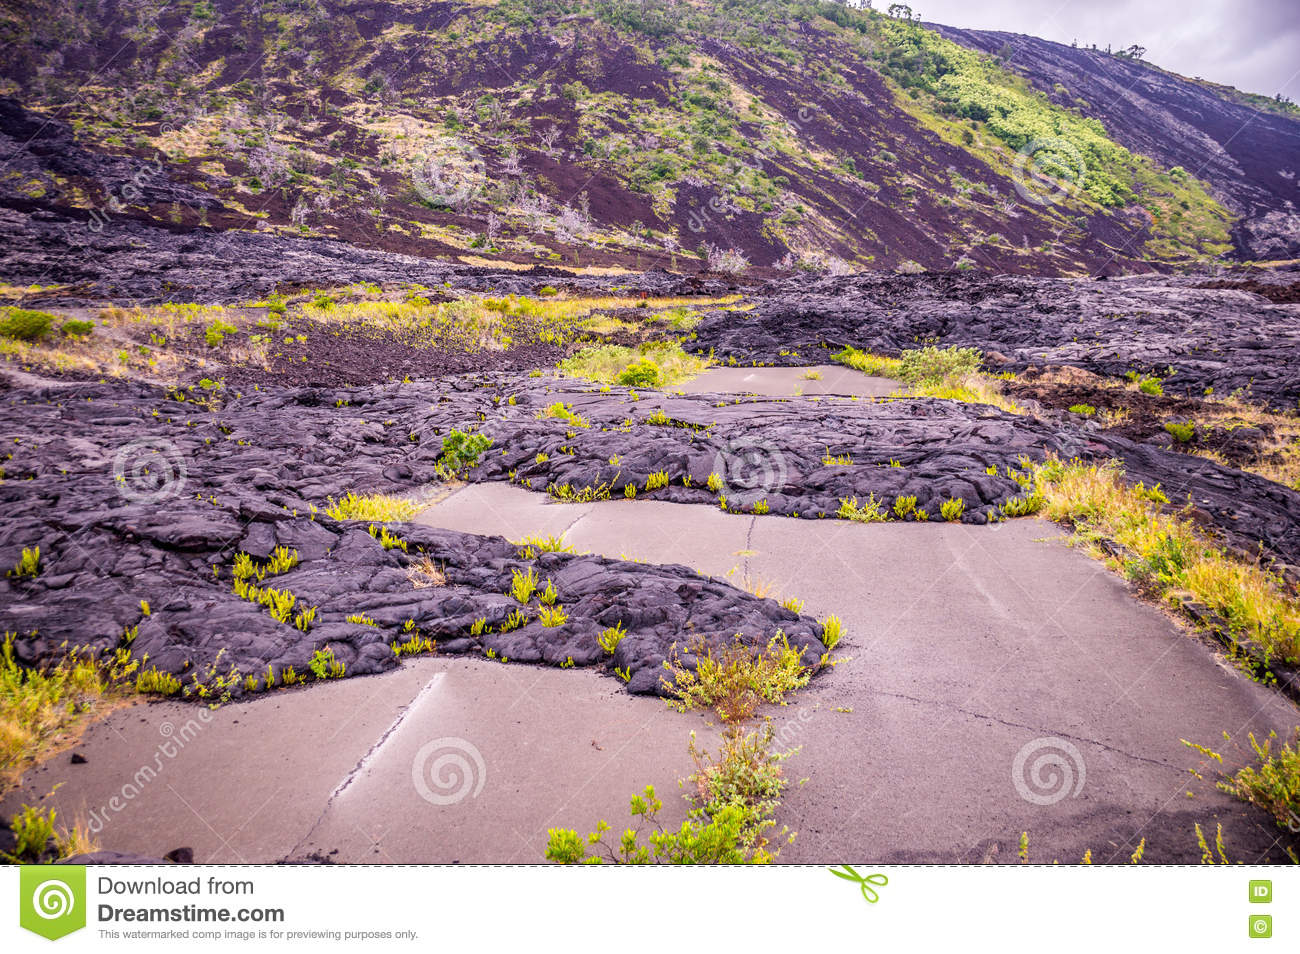 Straße mit Lava in Hawaii